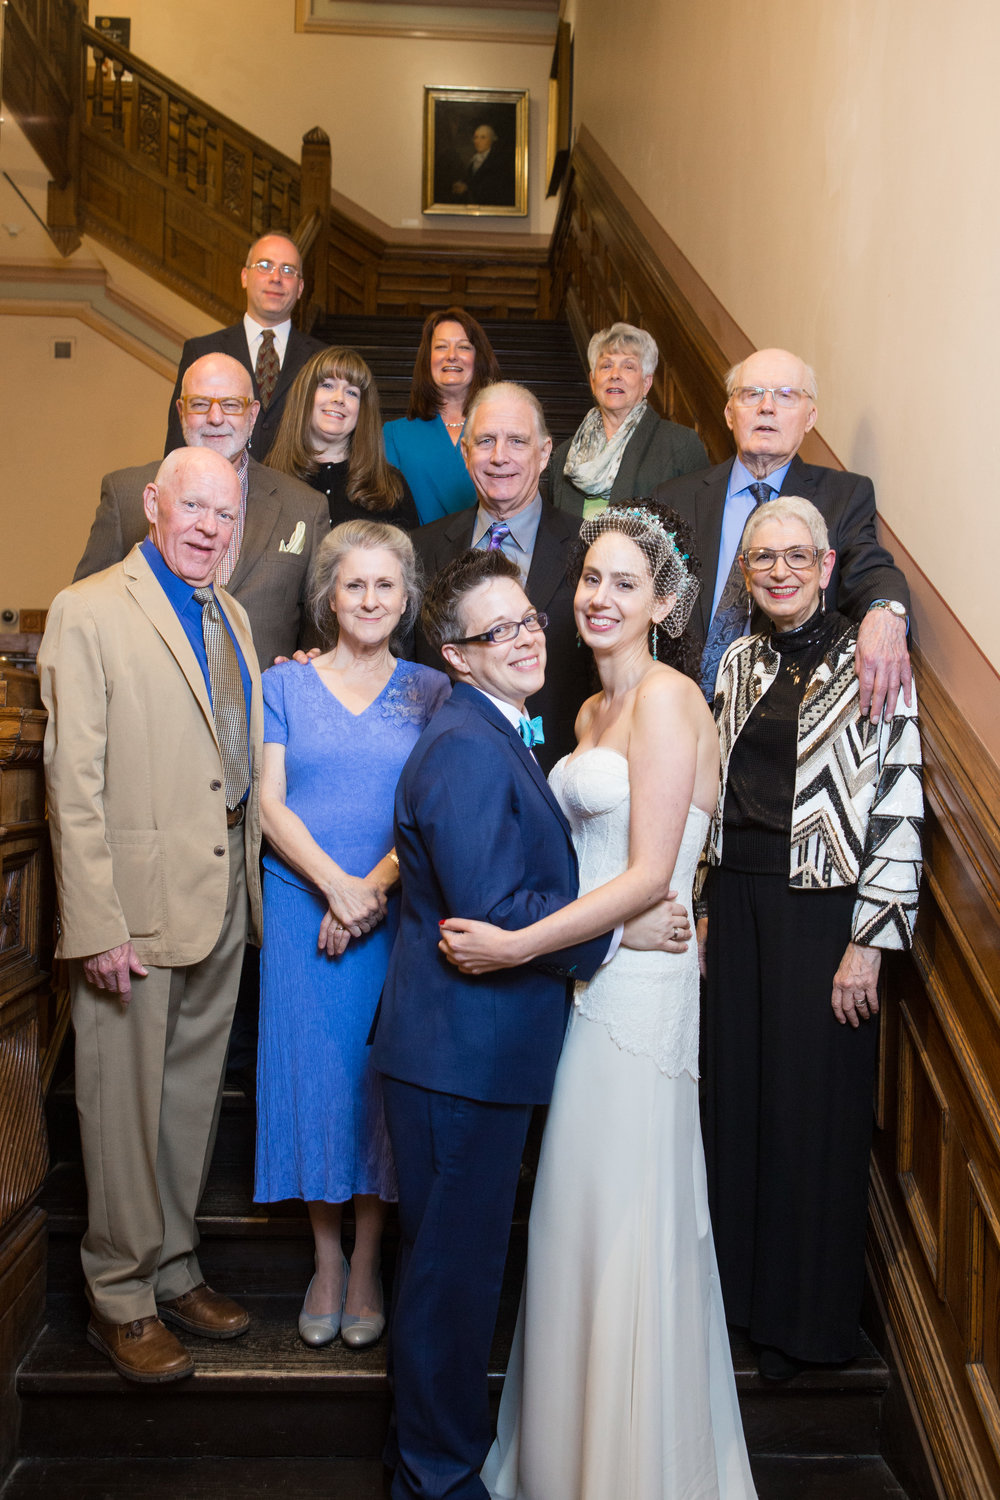 Family Wedding Shot.jpg